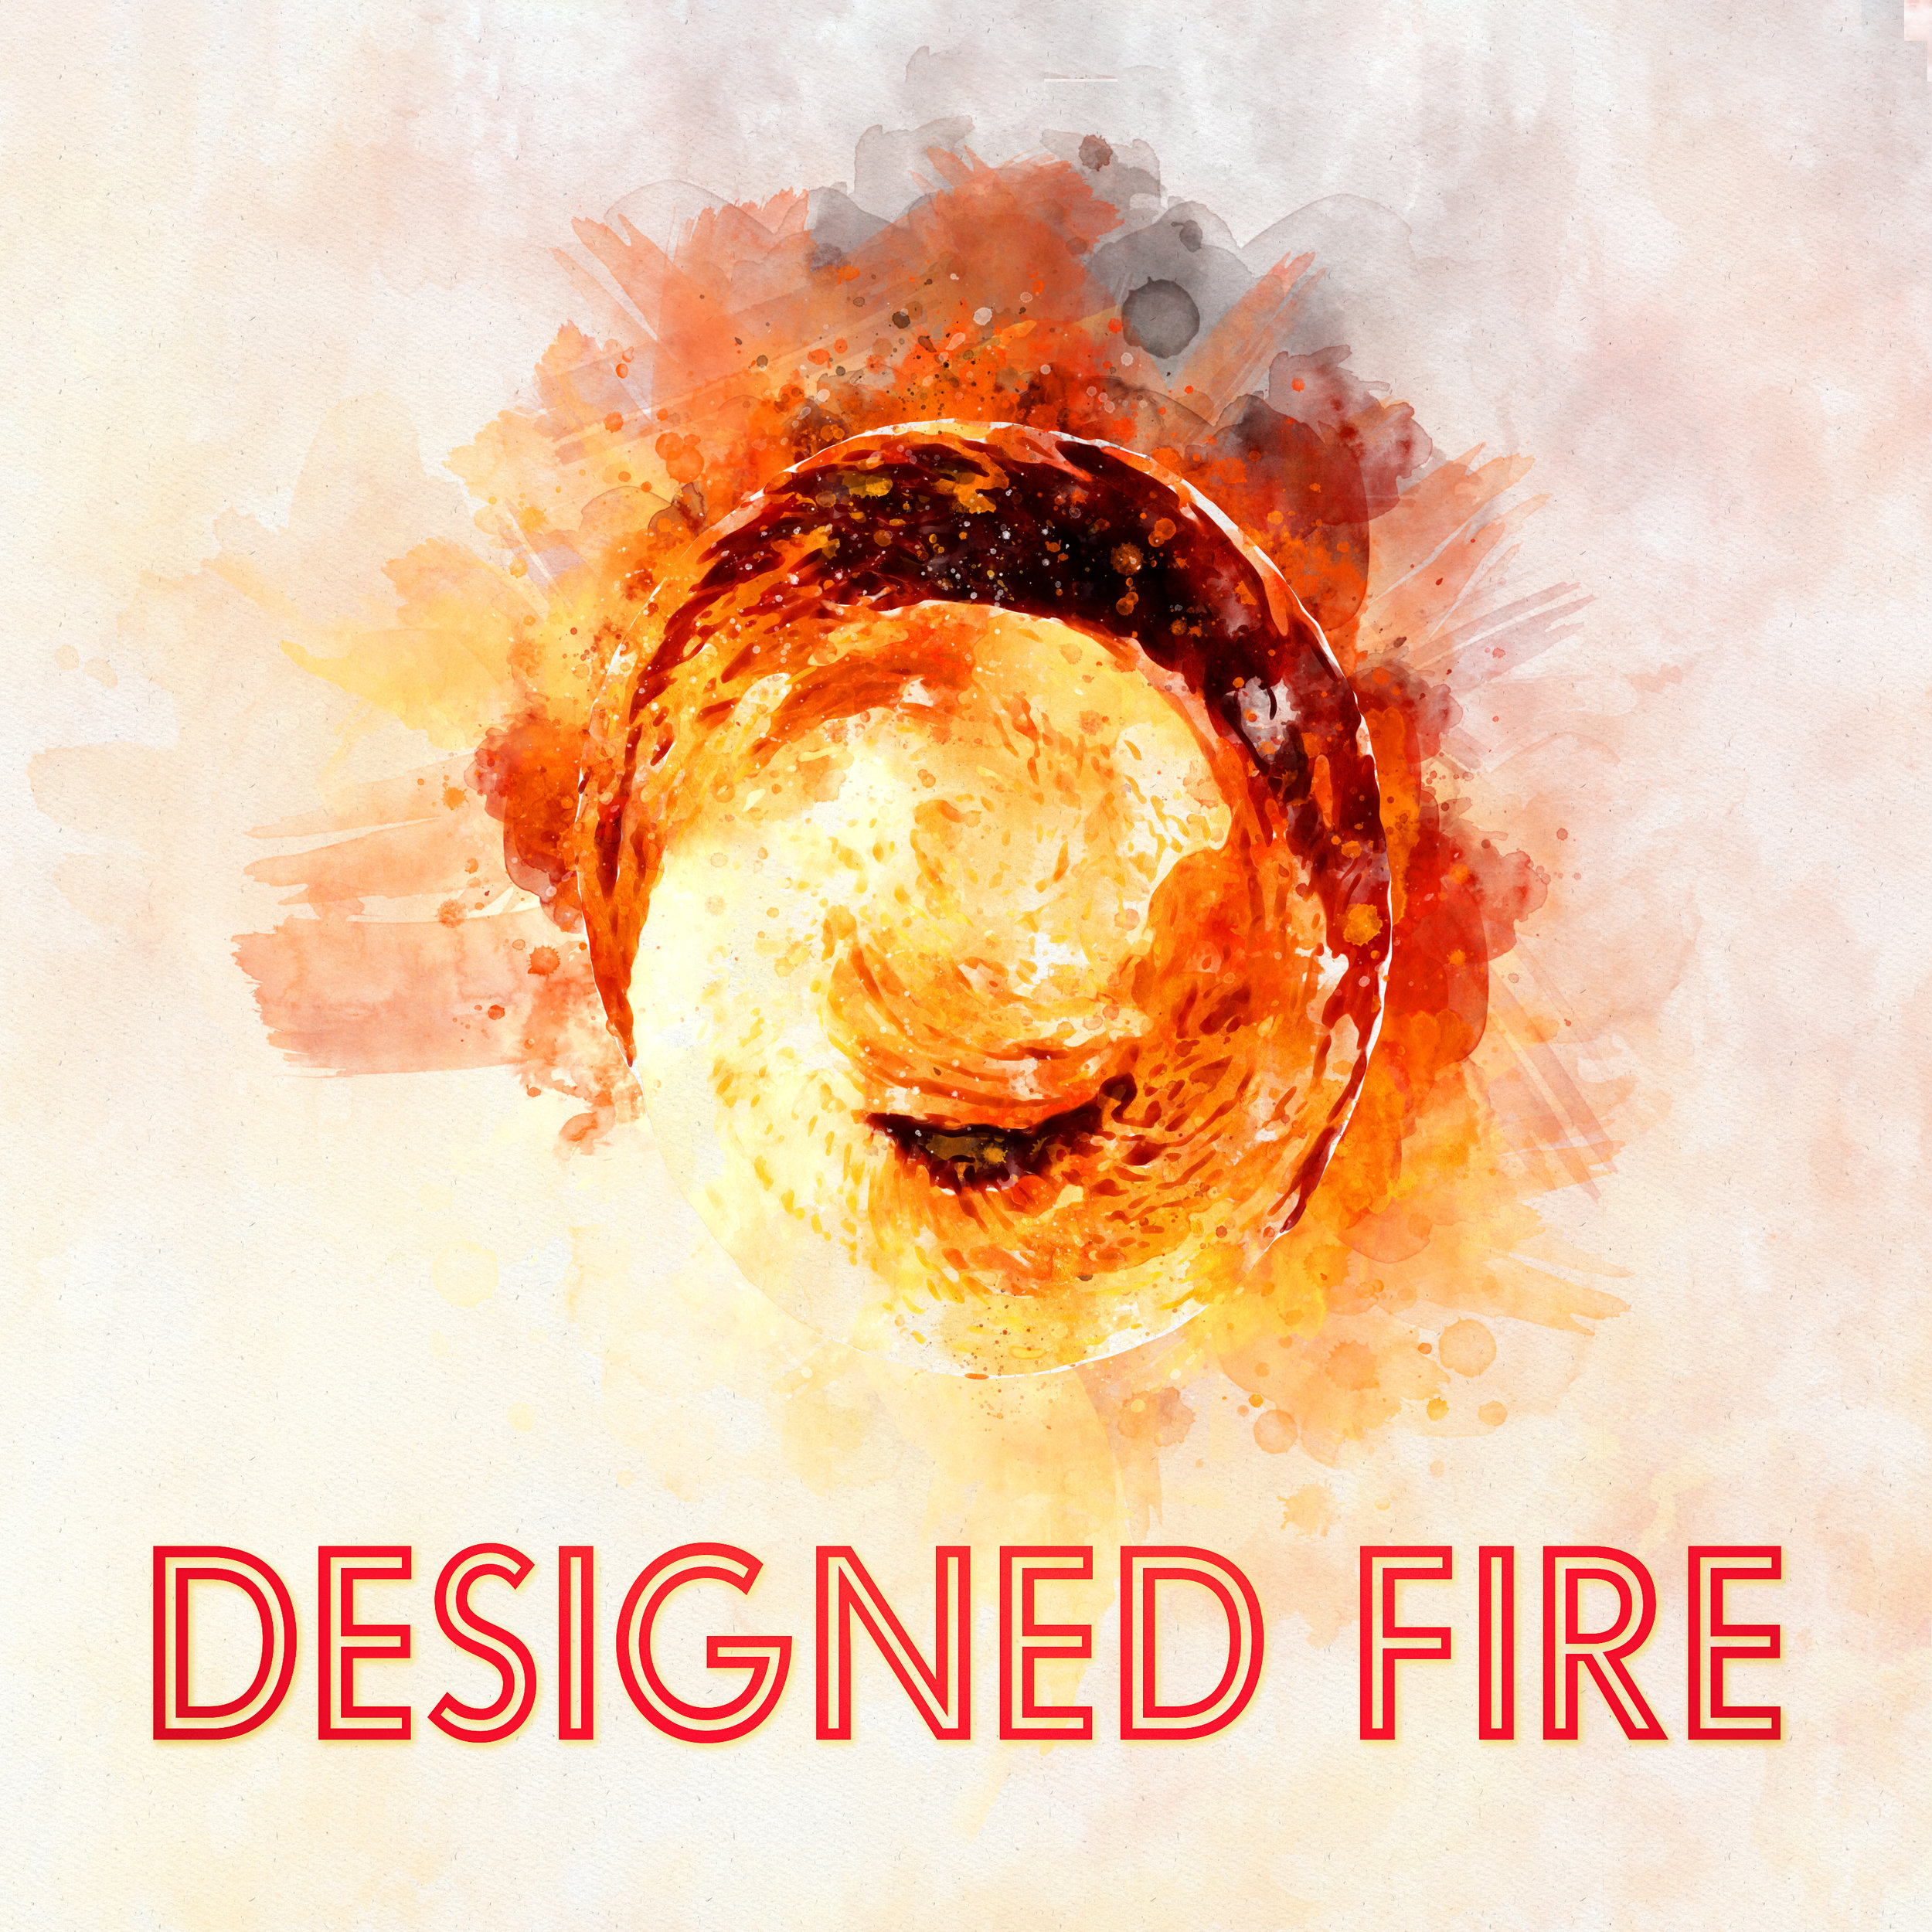 Designed Fire explores the further sonic realms of a powerful element. It features special effects, ambiences, swooshes, whooshes, fly-bys, drones, textures, glitches and more, that range from heavily designed to basic elements. -